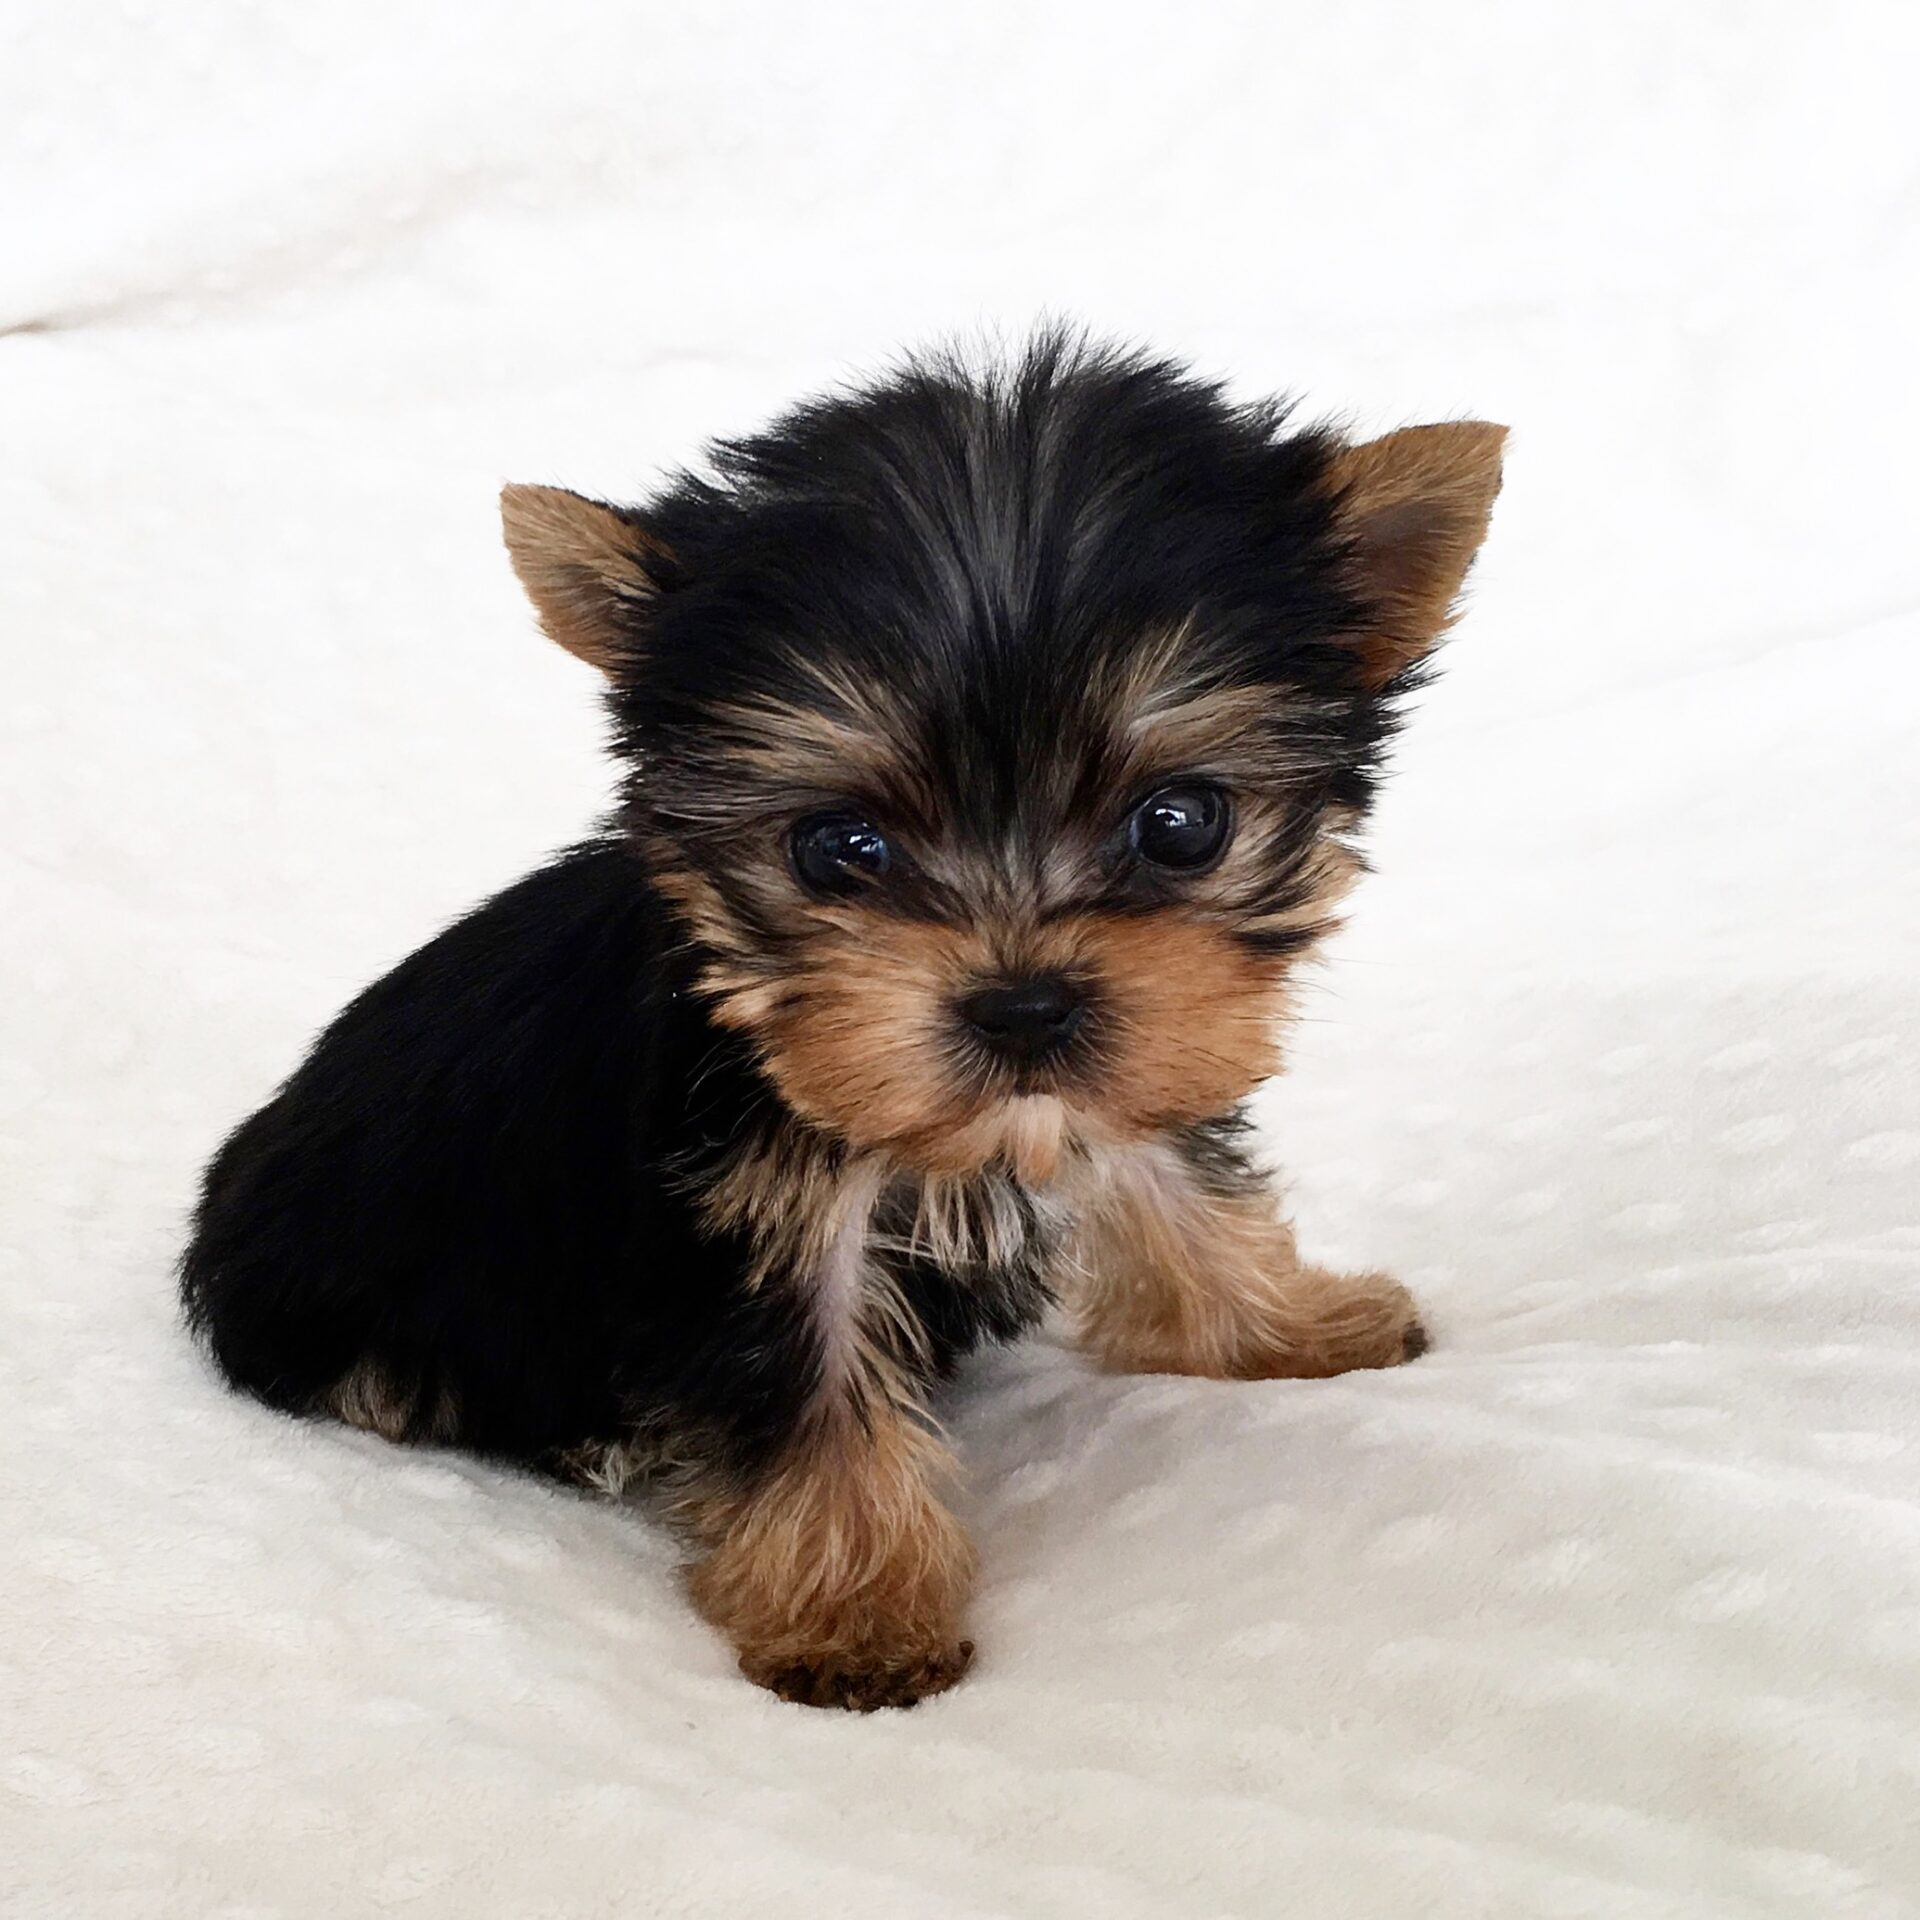 Teacup Yorkie Health problems